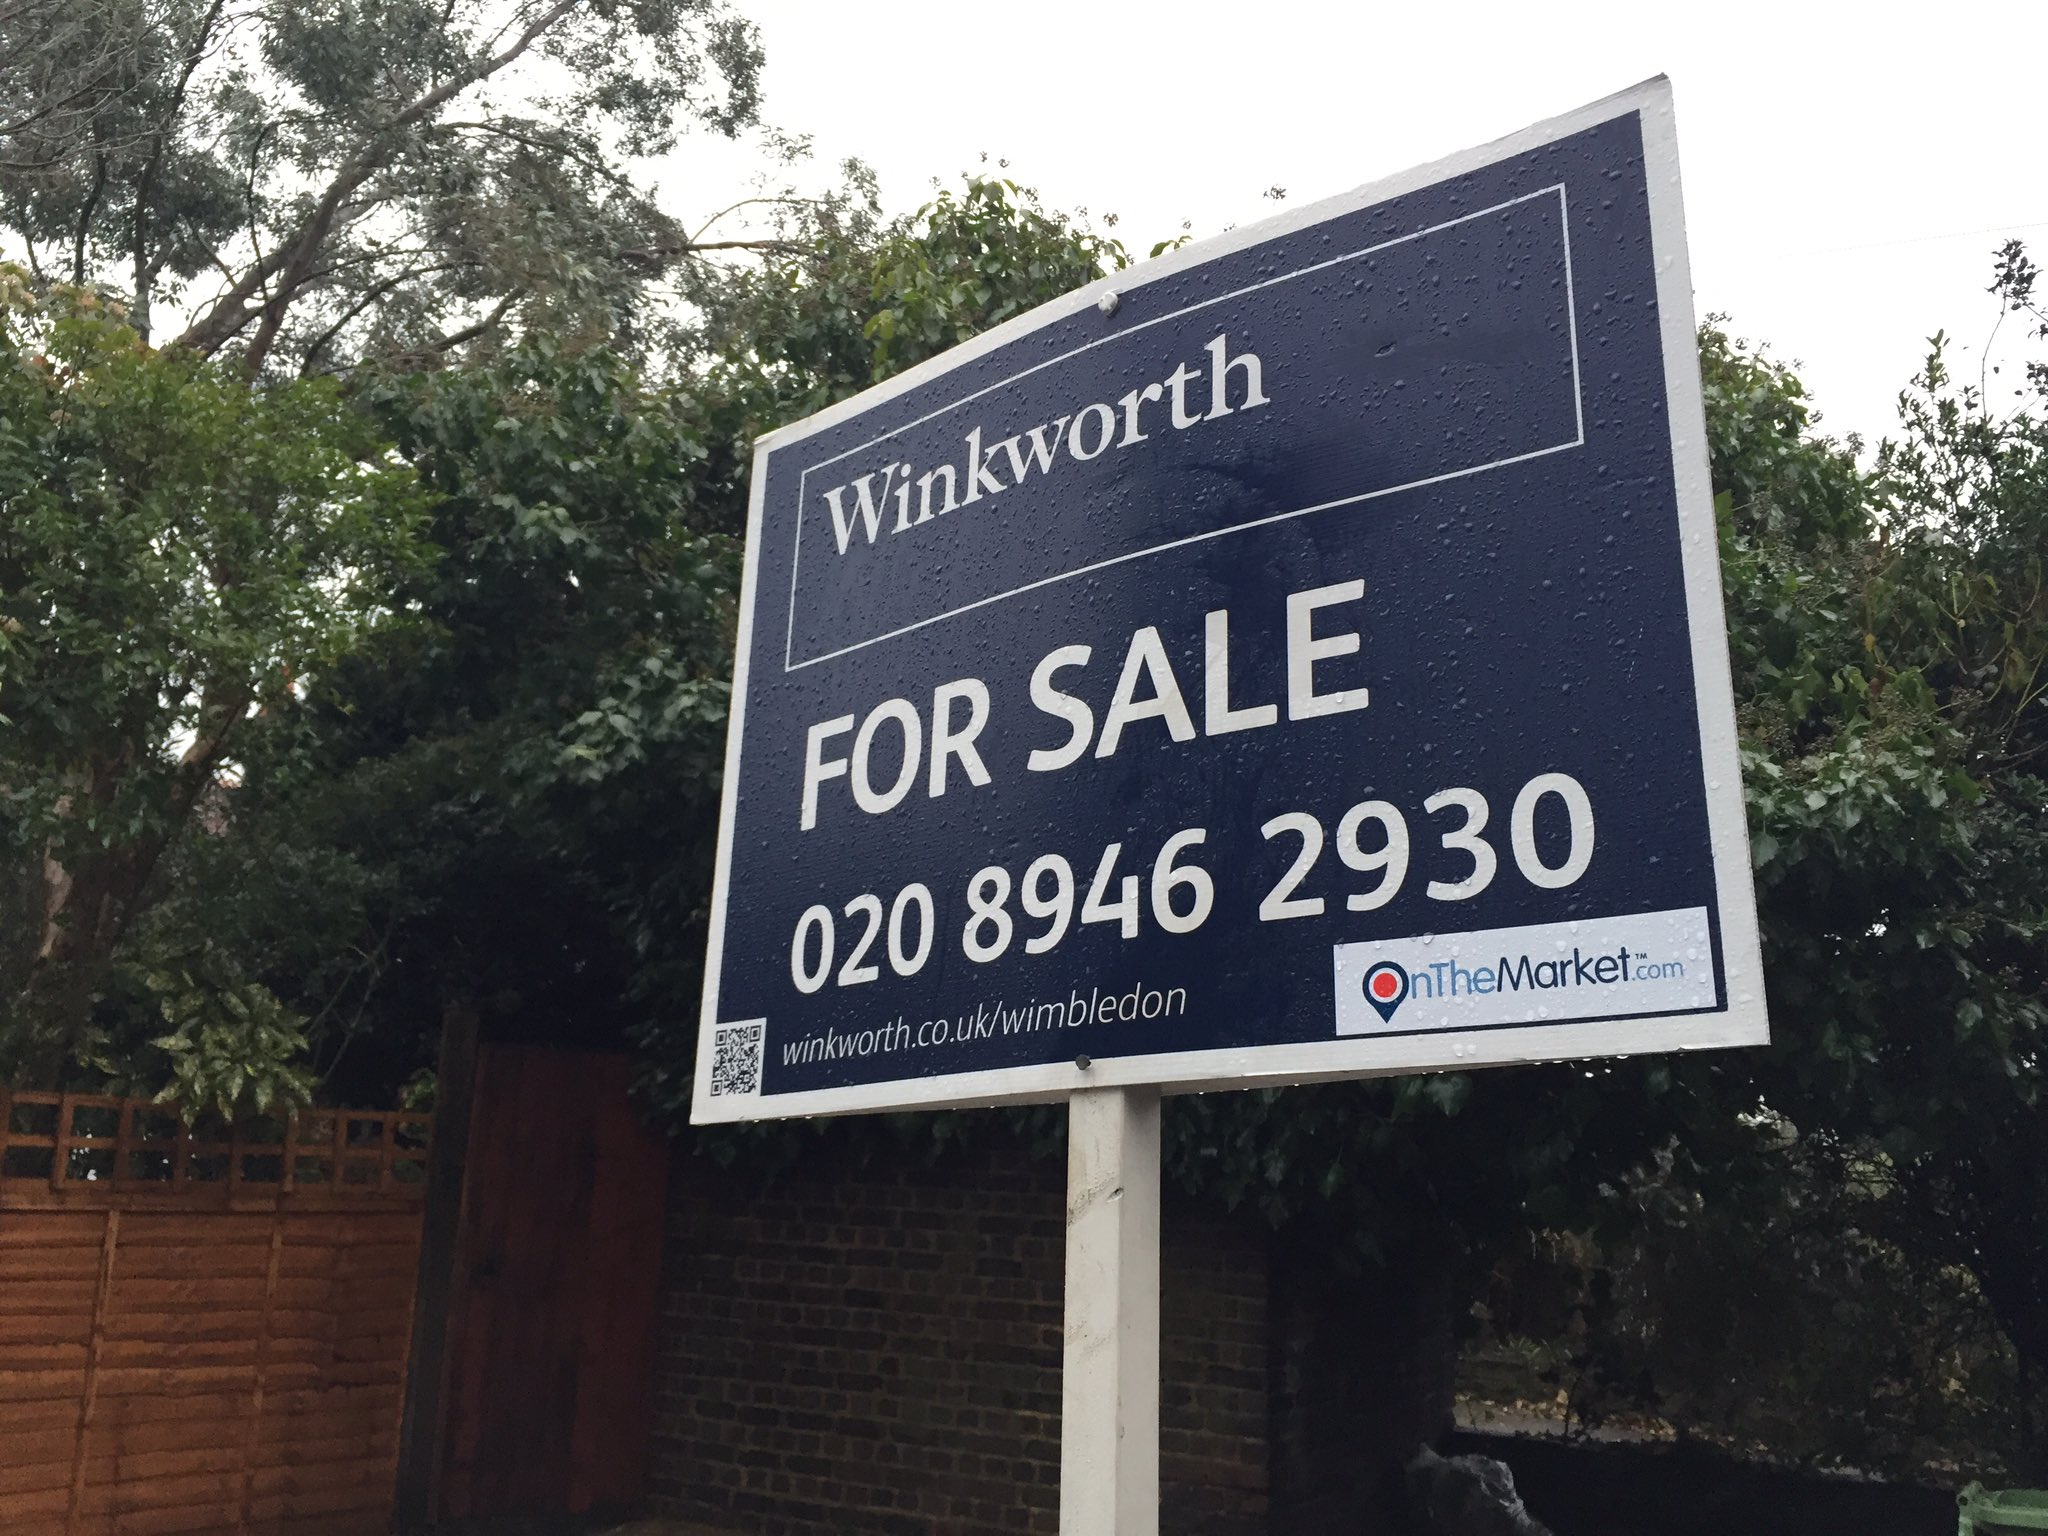 Our boards look good even in the rain! If you want one outside your house call #Winkworth today. https://t.co/x32hMuAHTB